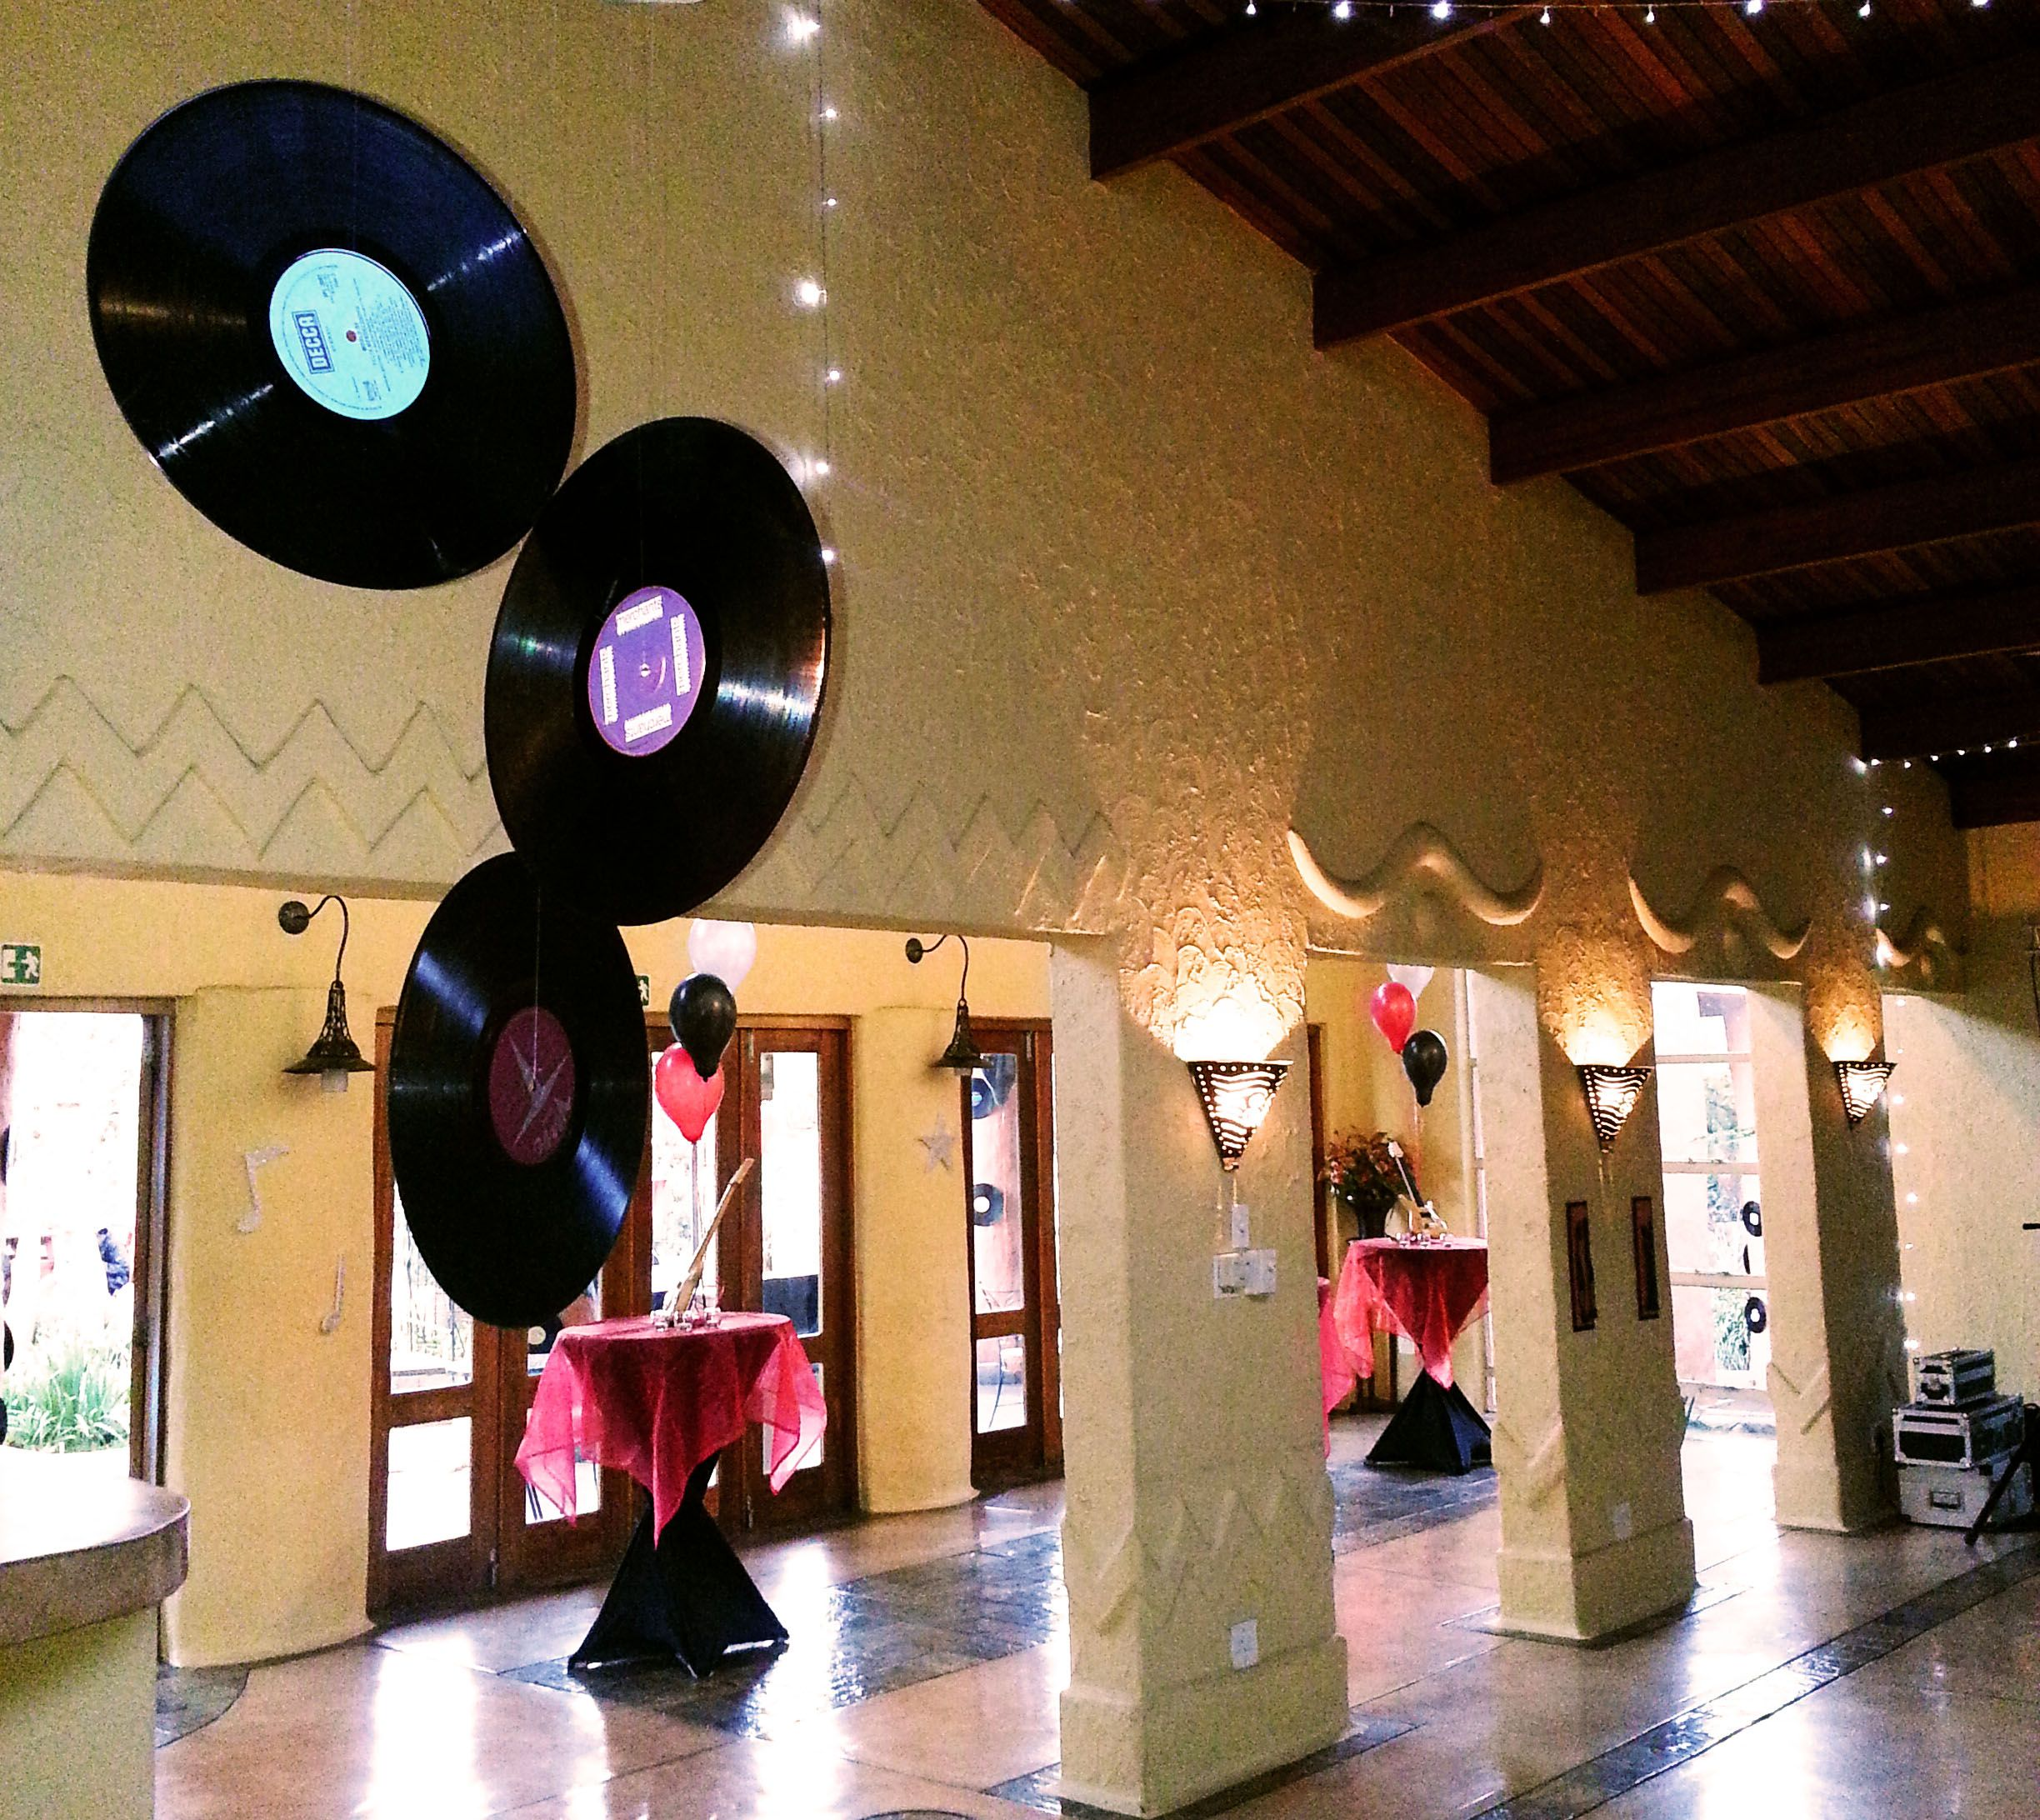 Wondrous Music Themed Decor For A 21St Party At Cabanga Music Themed Largest Home Design Picture Inspirations Pitcheantrous